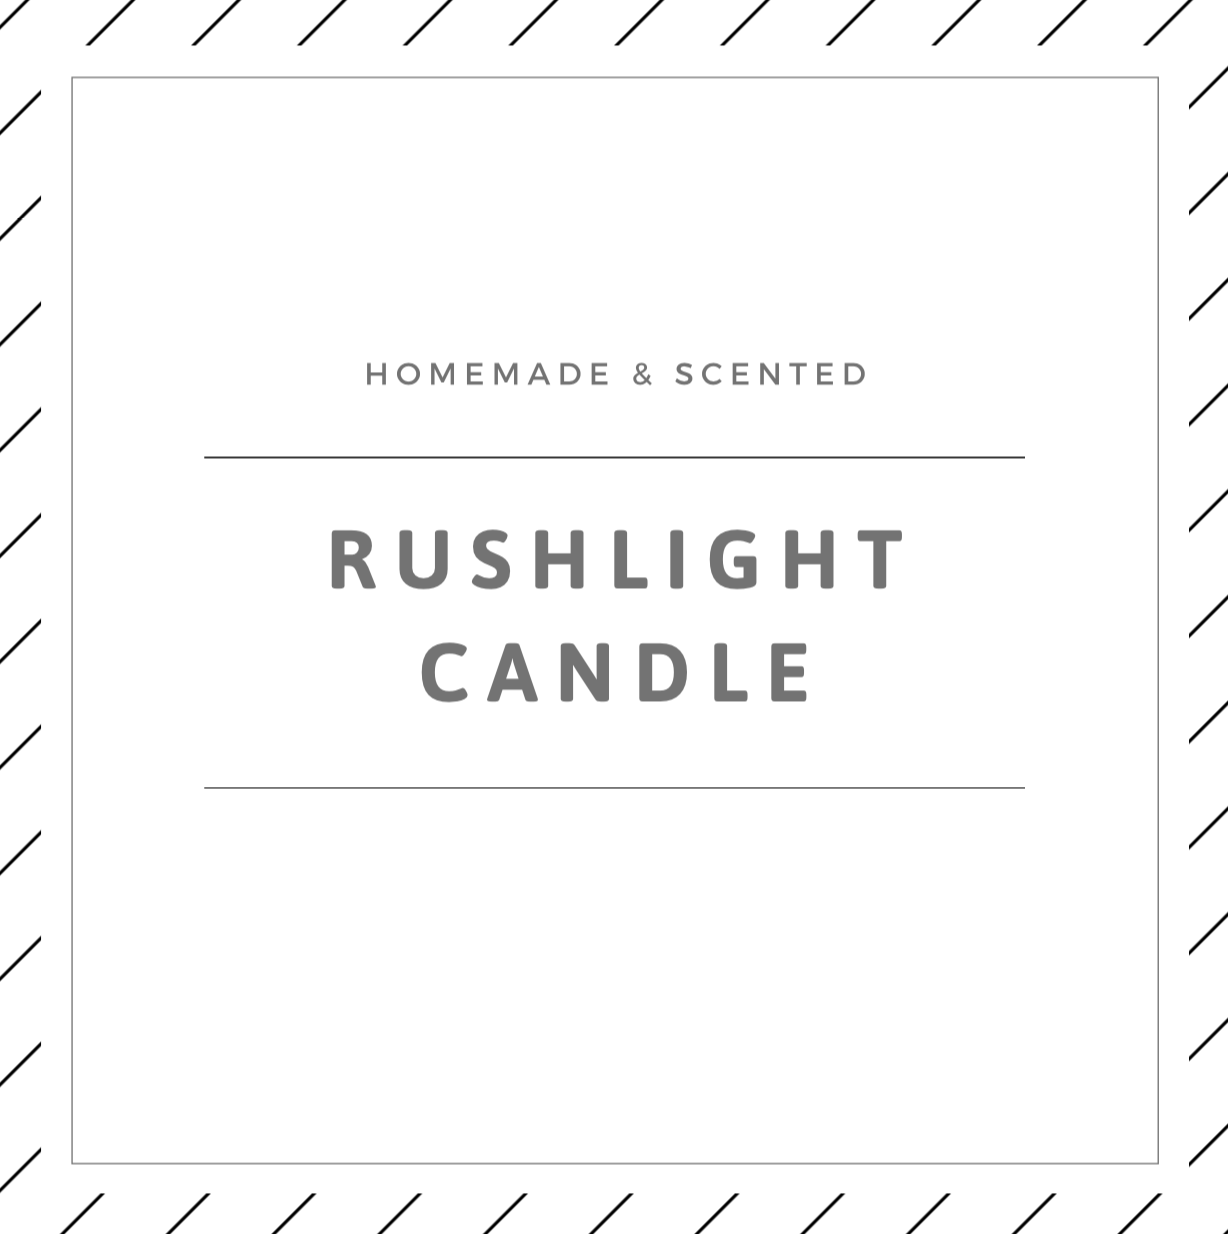 Rushlight Candle